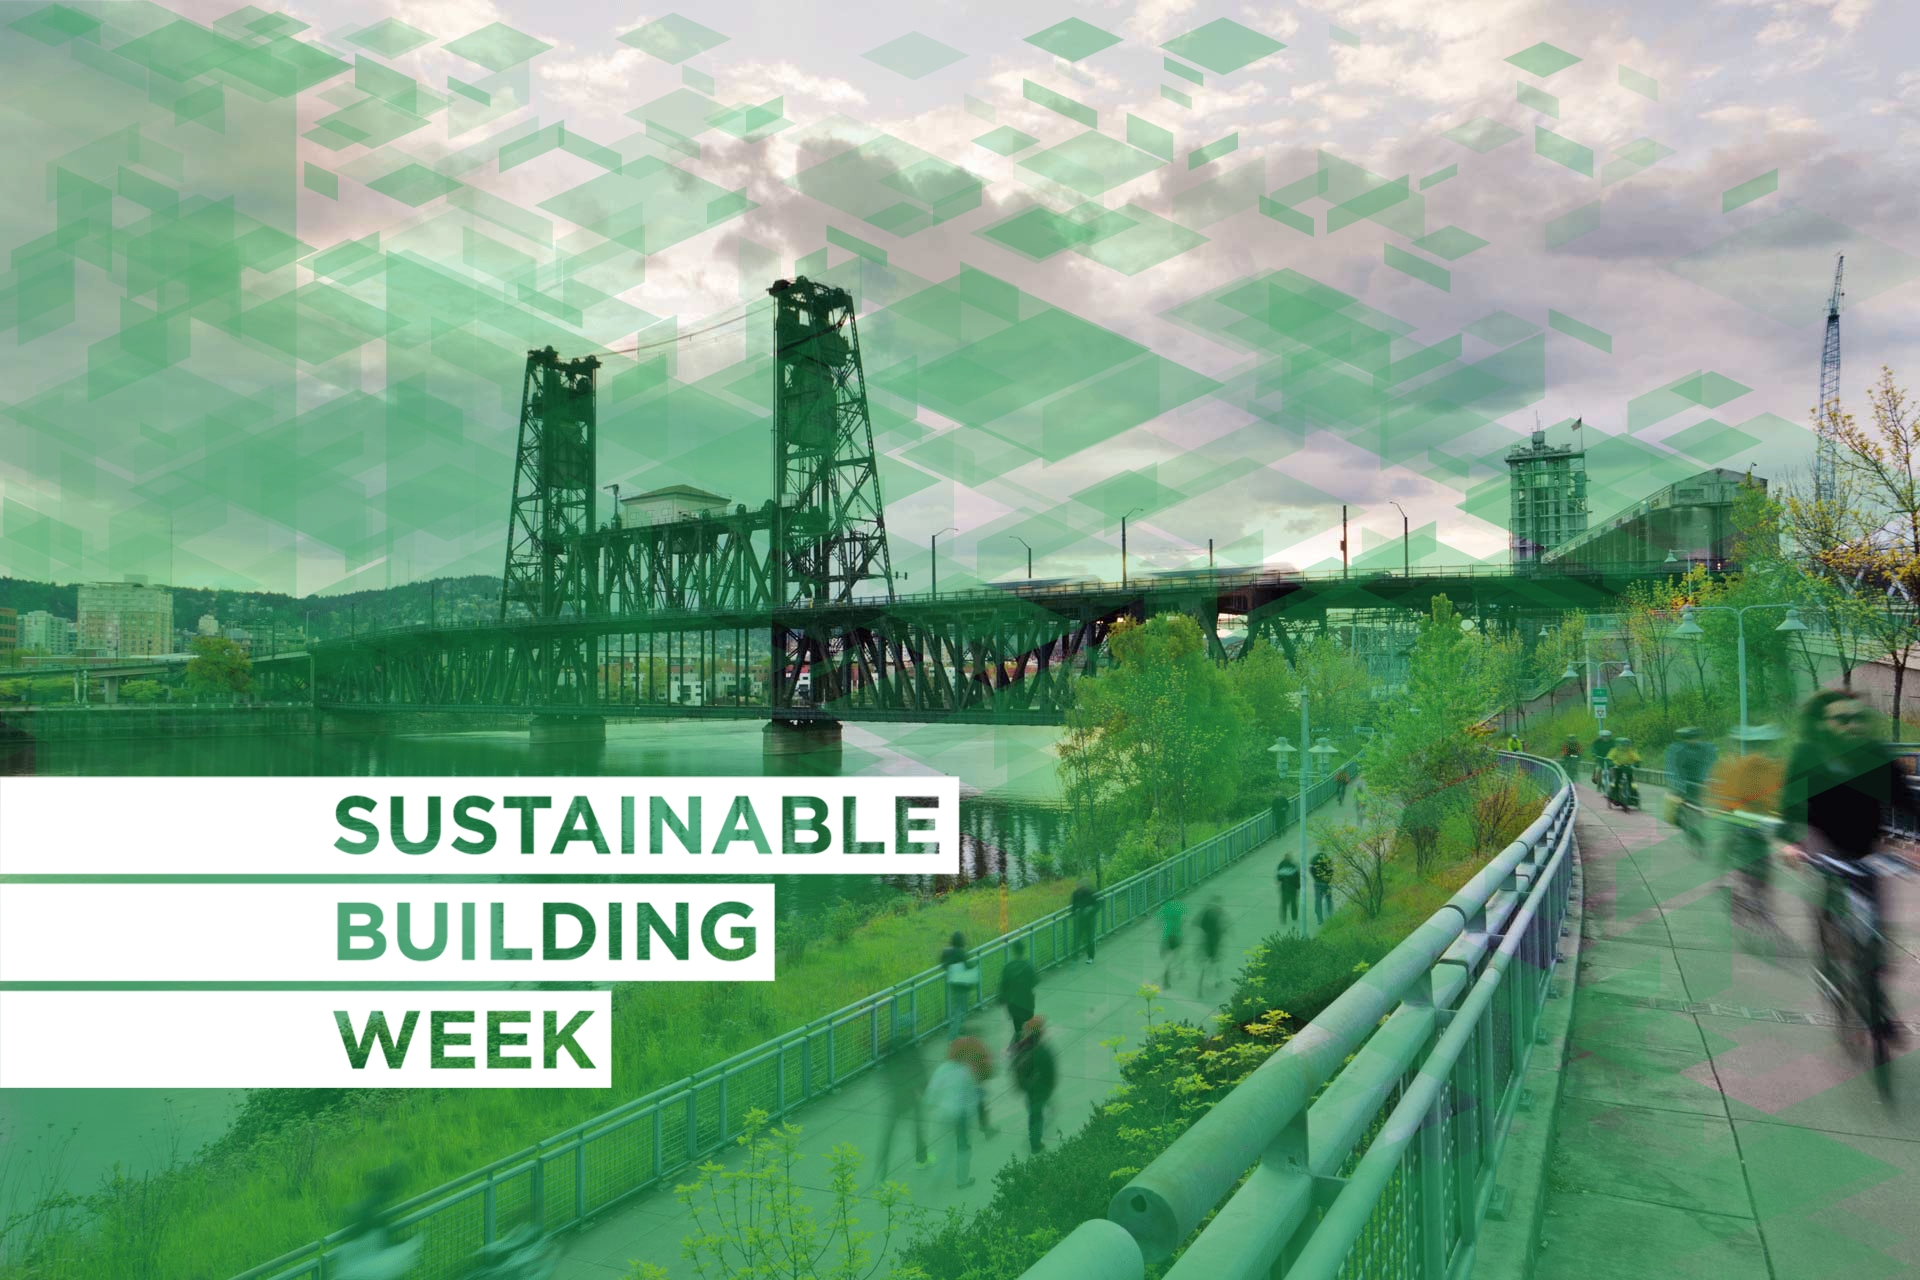 Sustainable Building Week Cover Image